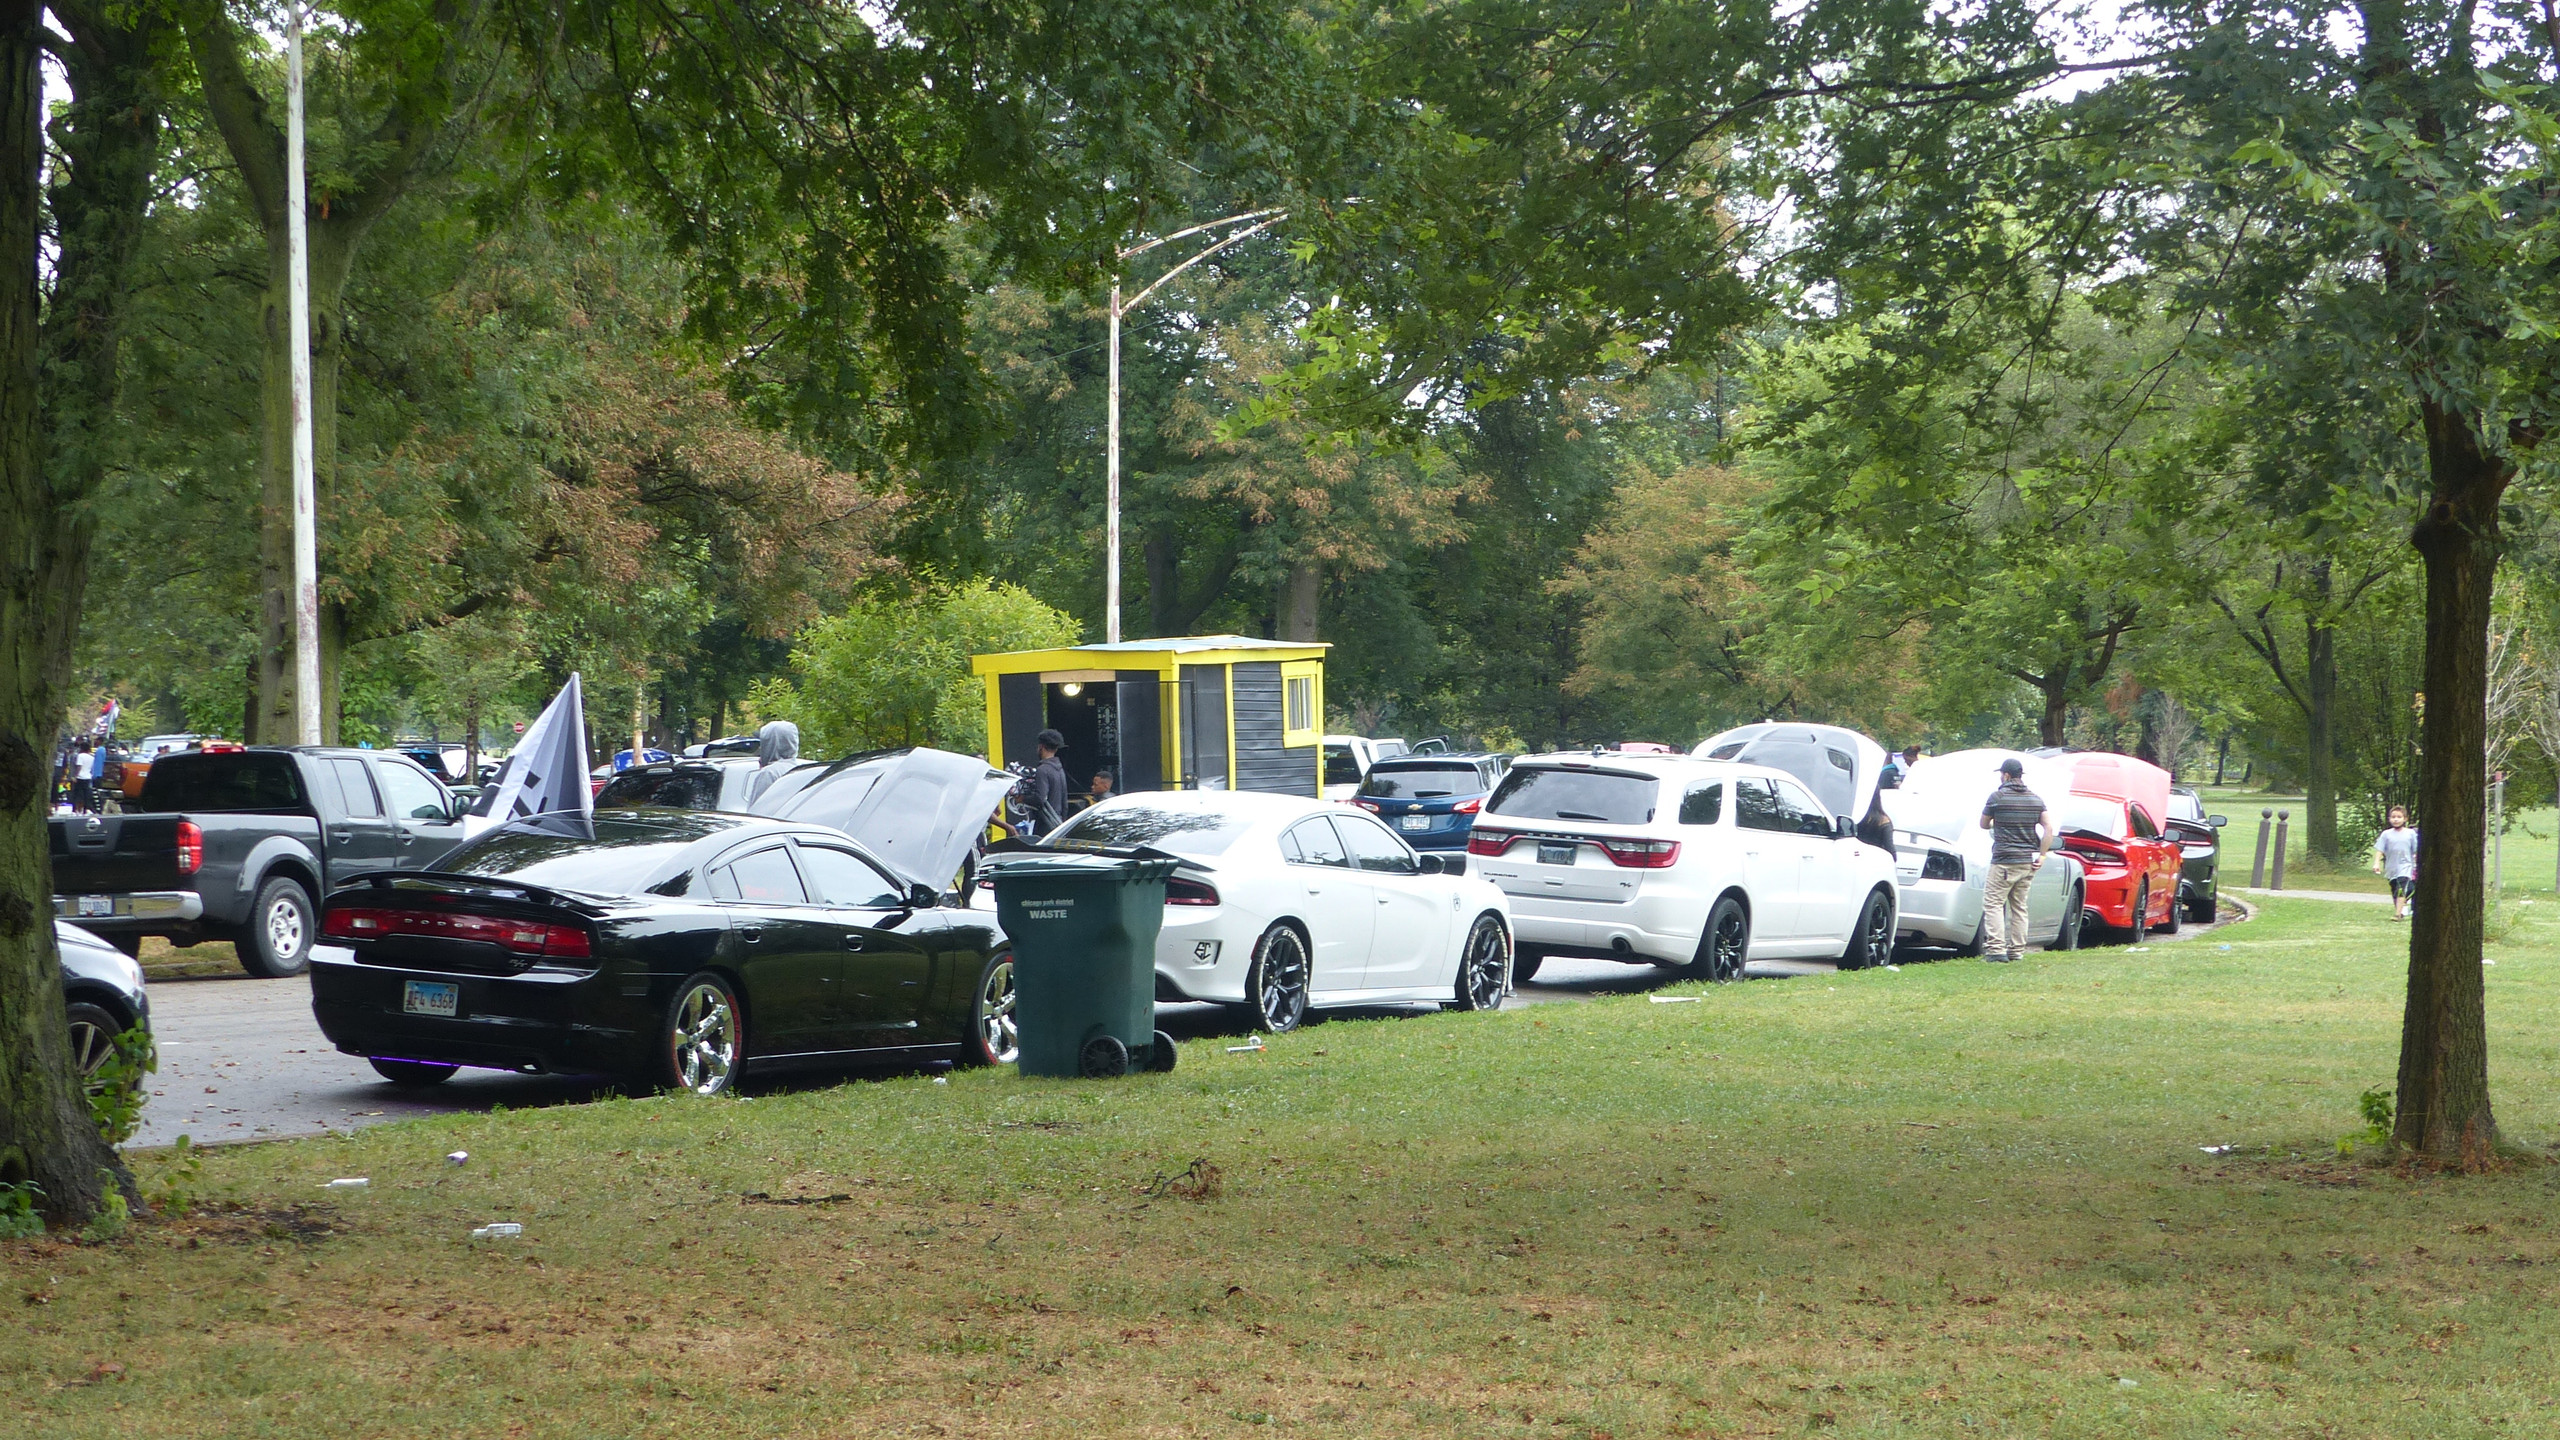 Muscle Cars in Washington Park